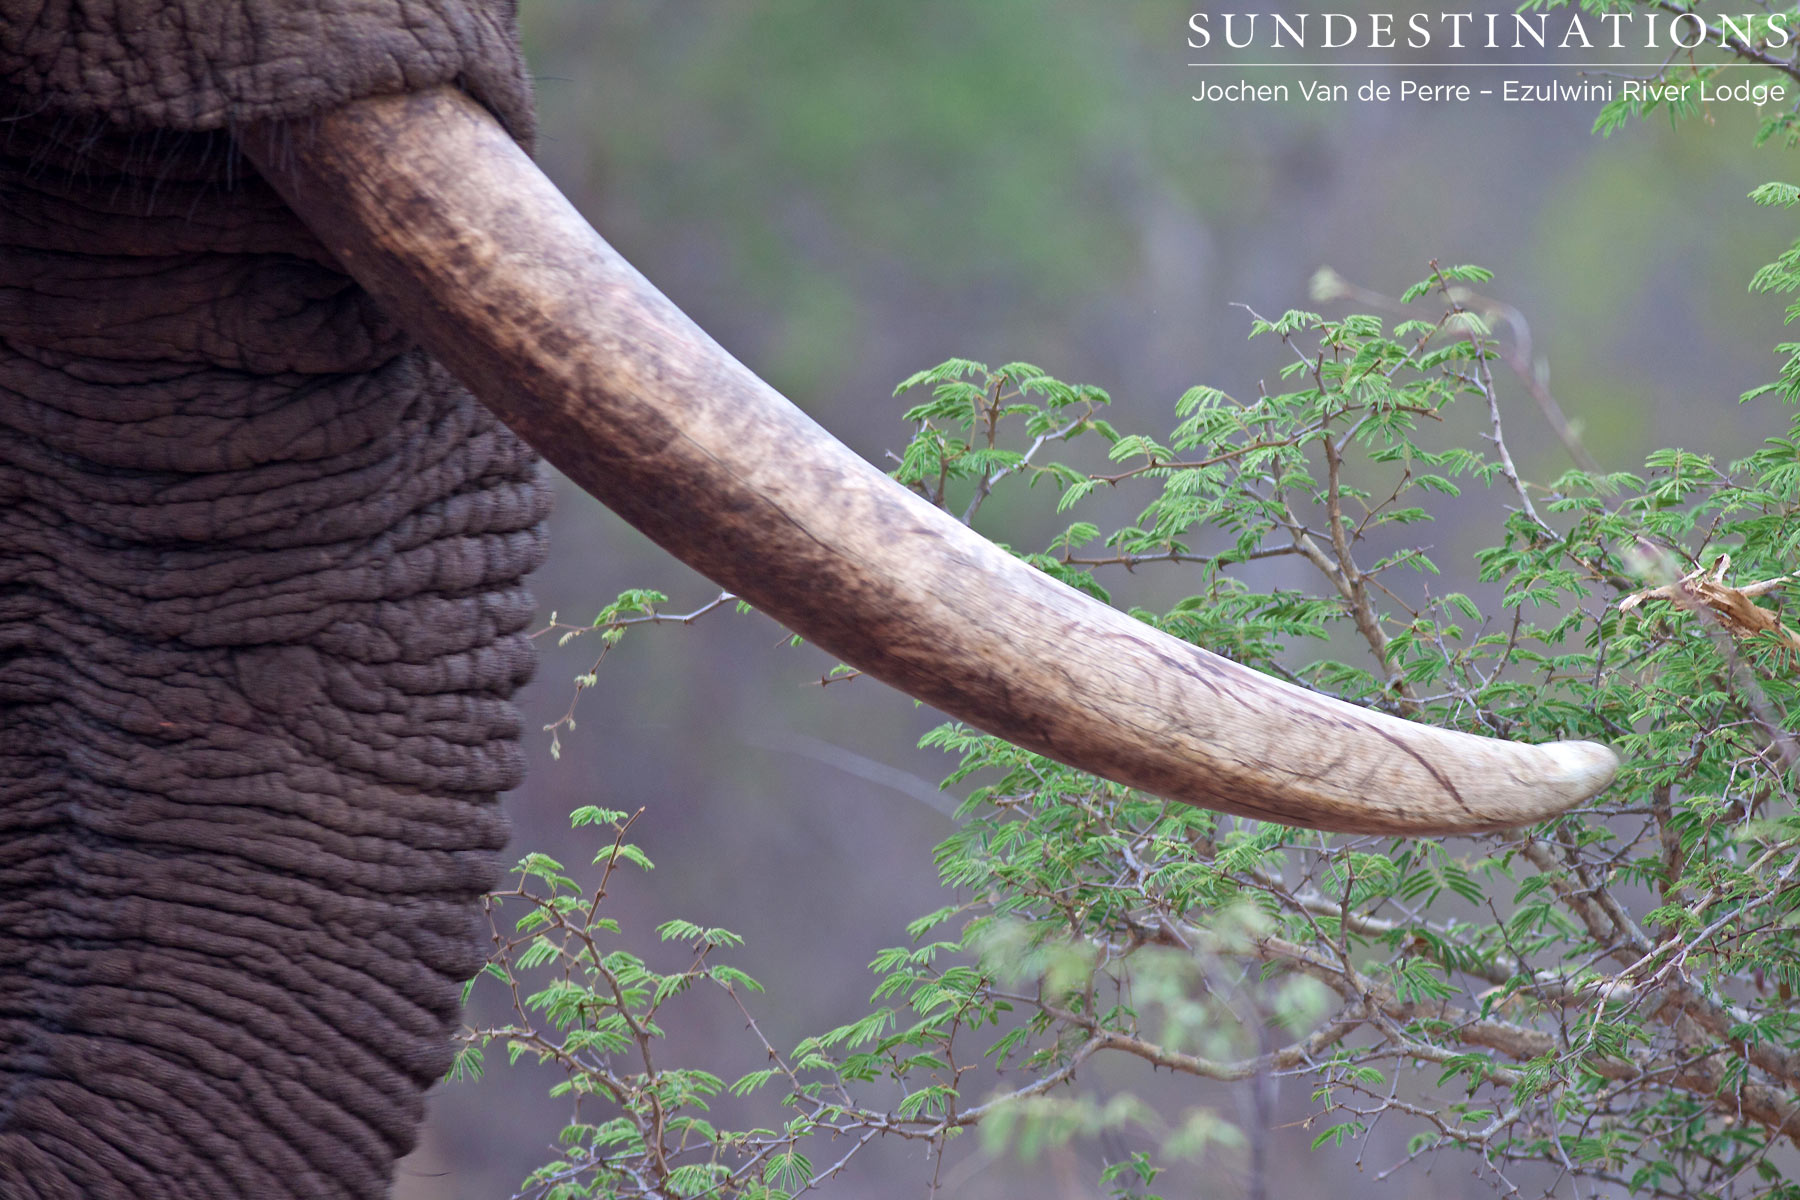 Shoshangaan the Tusker Dies of Natural Causes